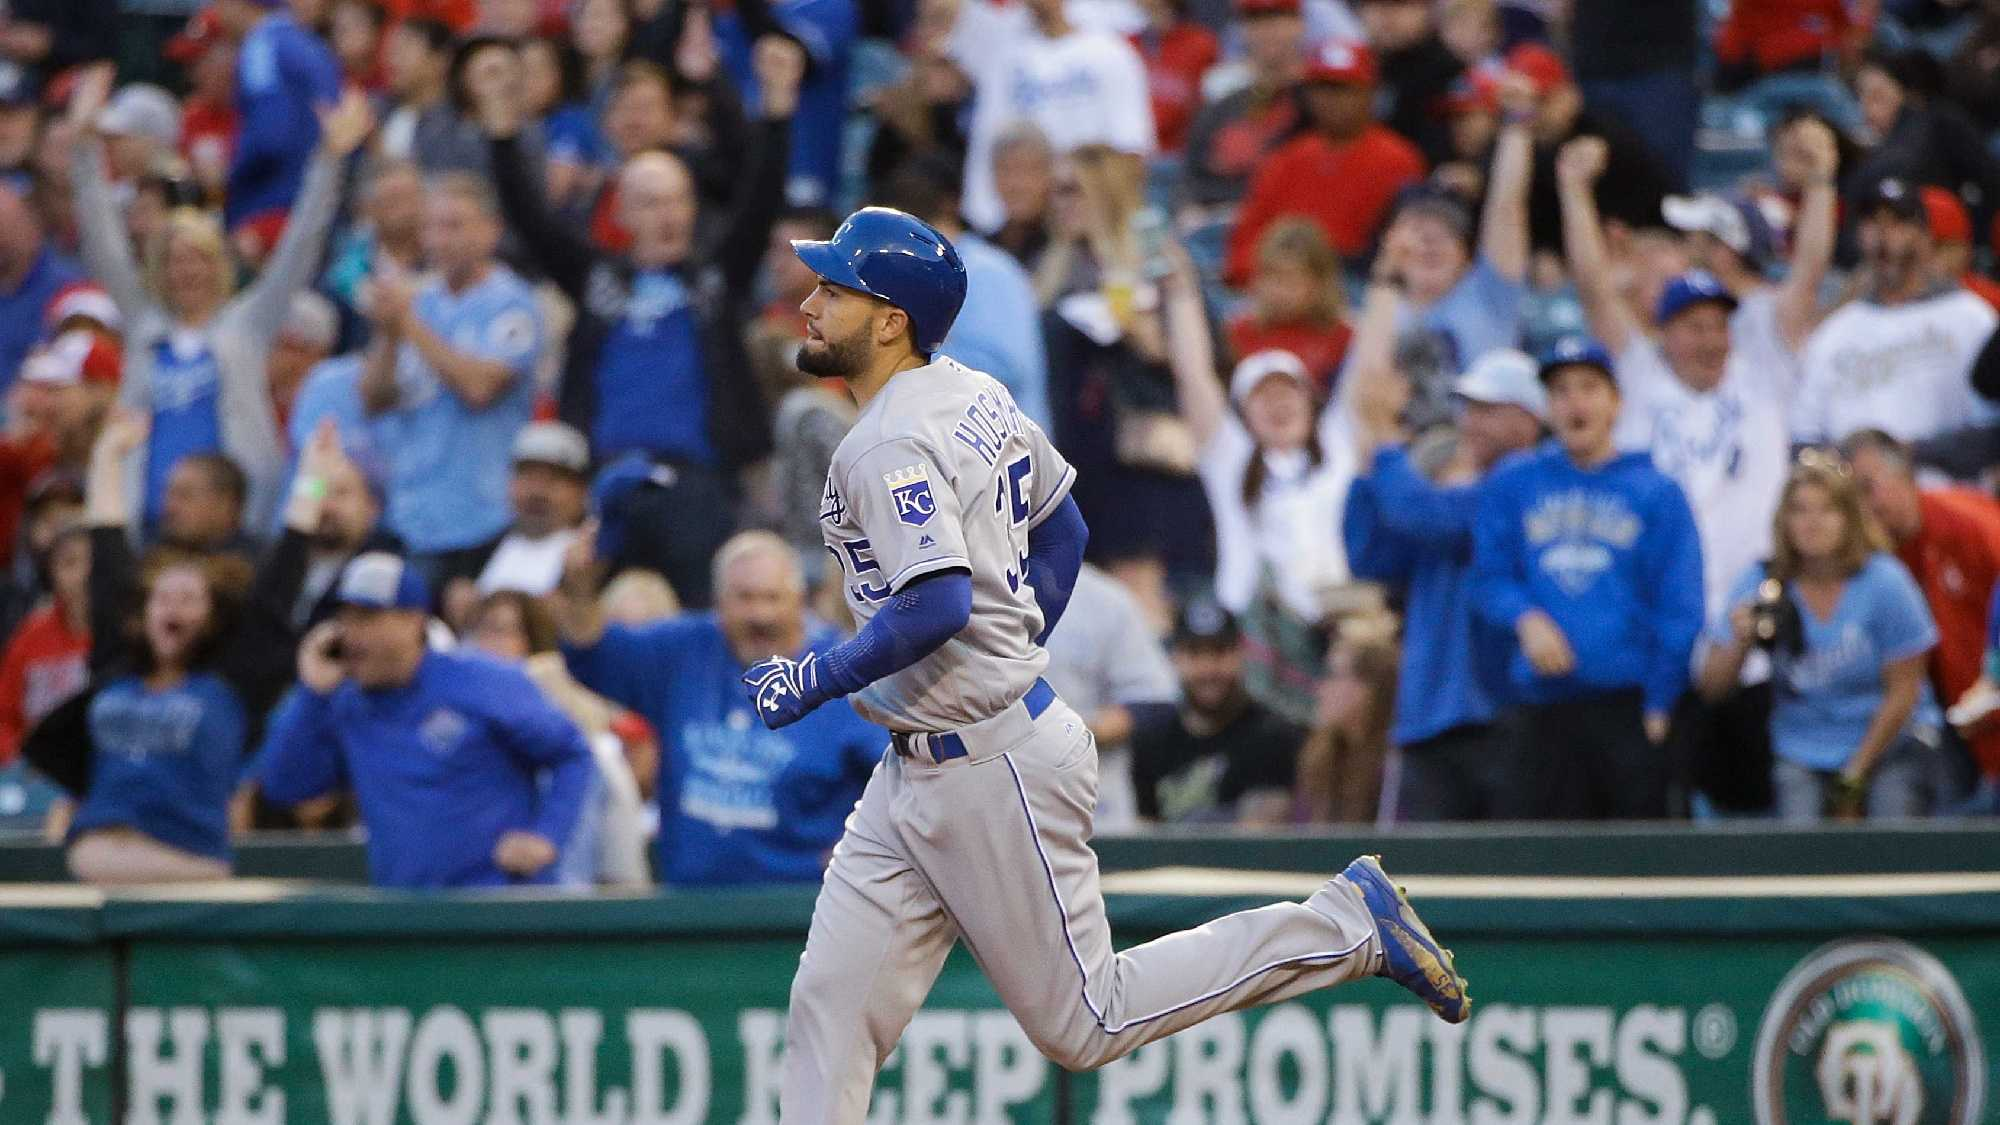 Fans cheer as Kansas City Royals' Eric Hosmer rounds the bases after hitting a two-run home run during the first inning of a baseball game against the Los Angeles Angels, Wednesday, April 27, 2016, in Anaheim, Calif. (AP Photo/Jae C. Hong)